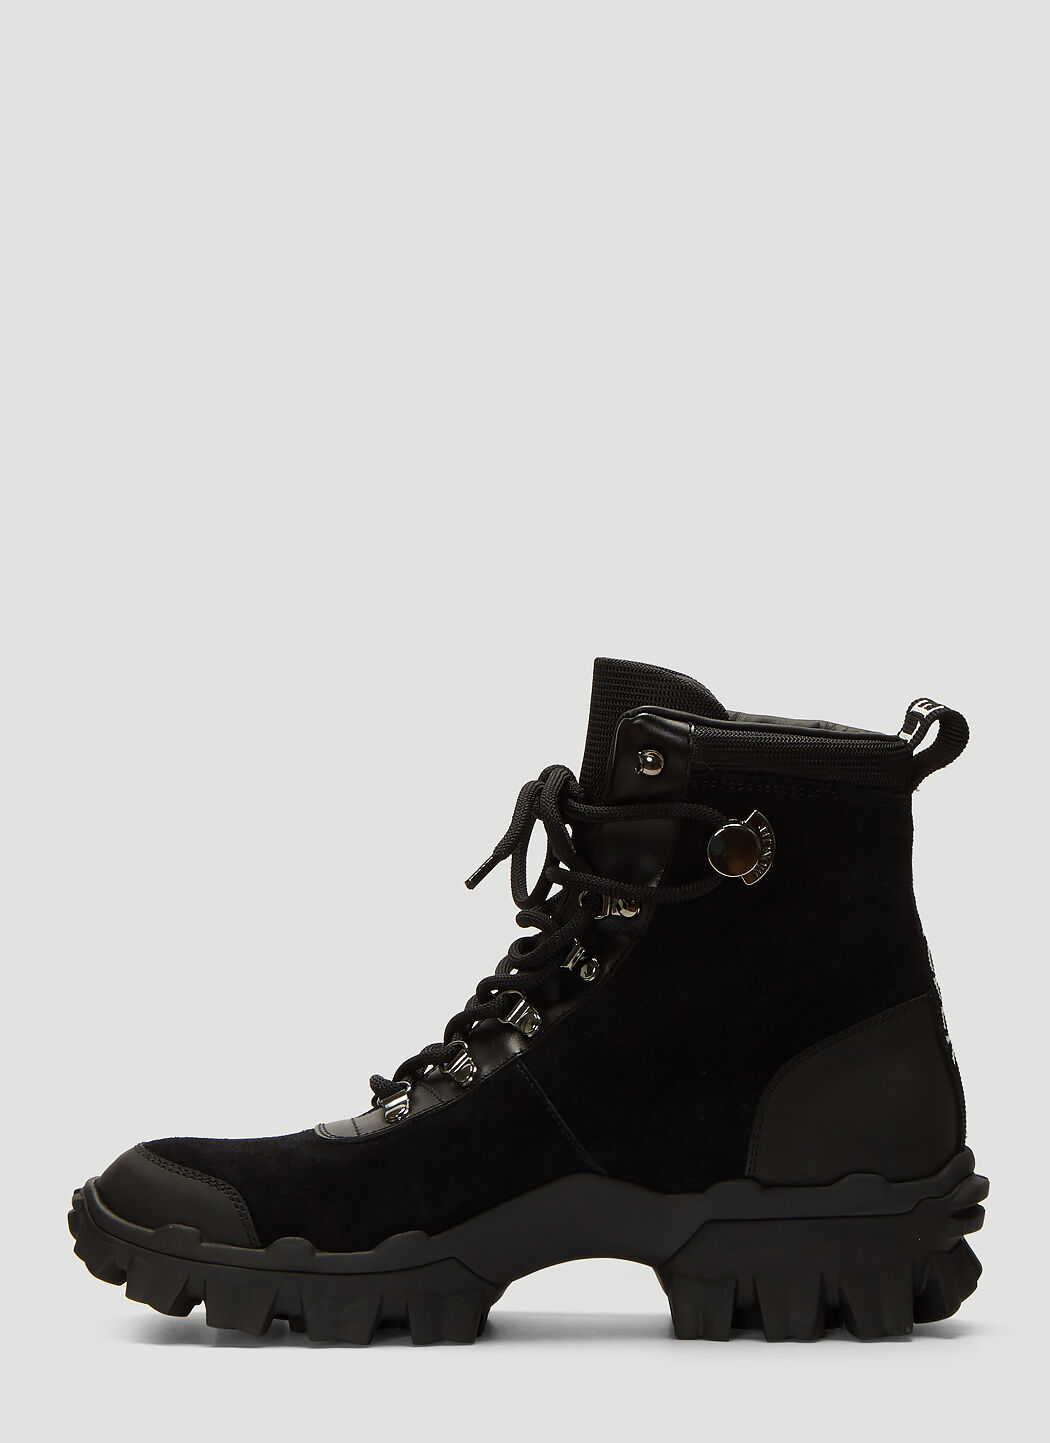 Helis Suede Boots in Black | LN CC